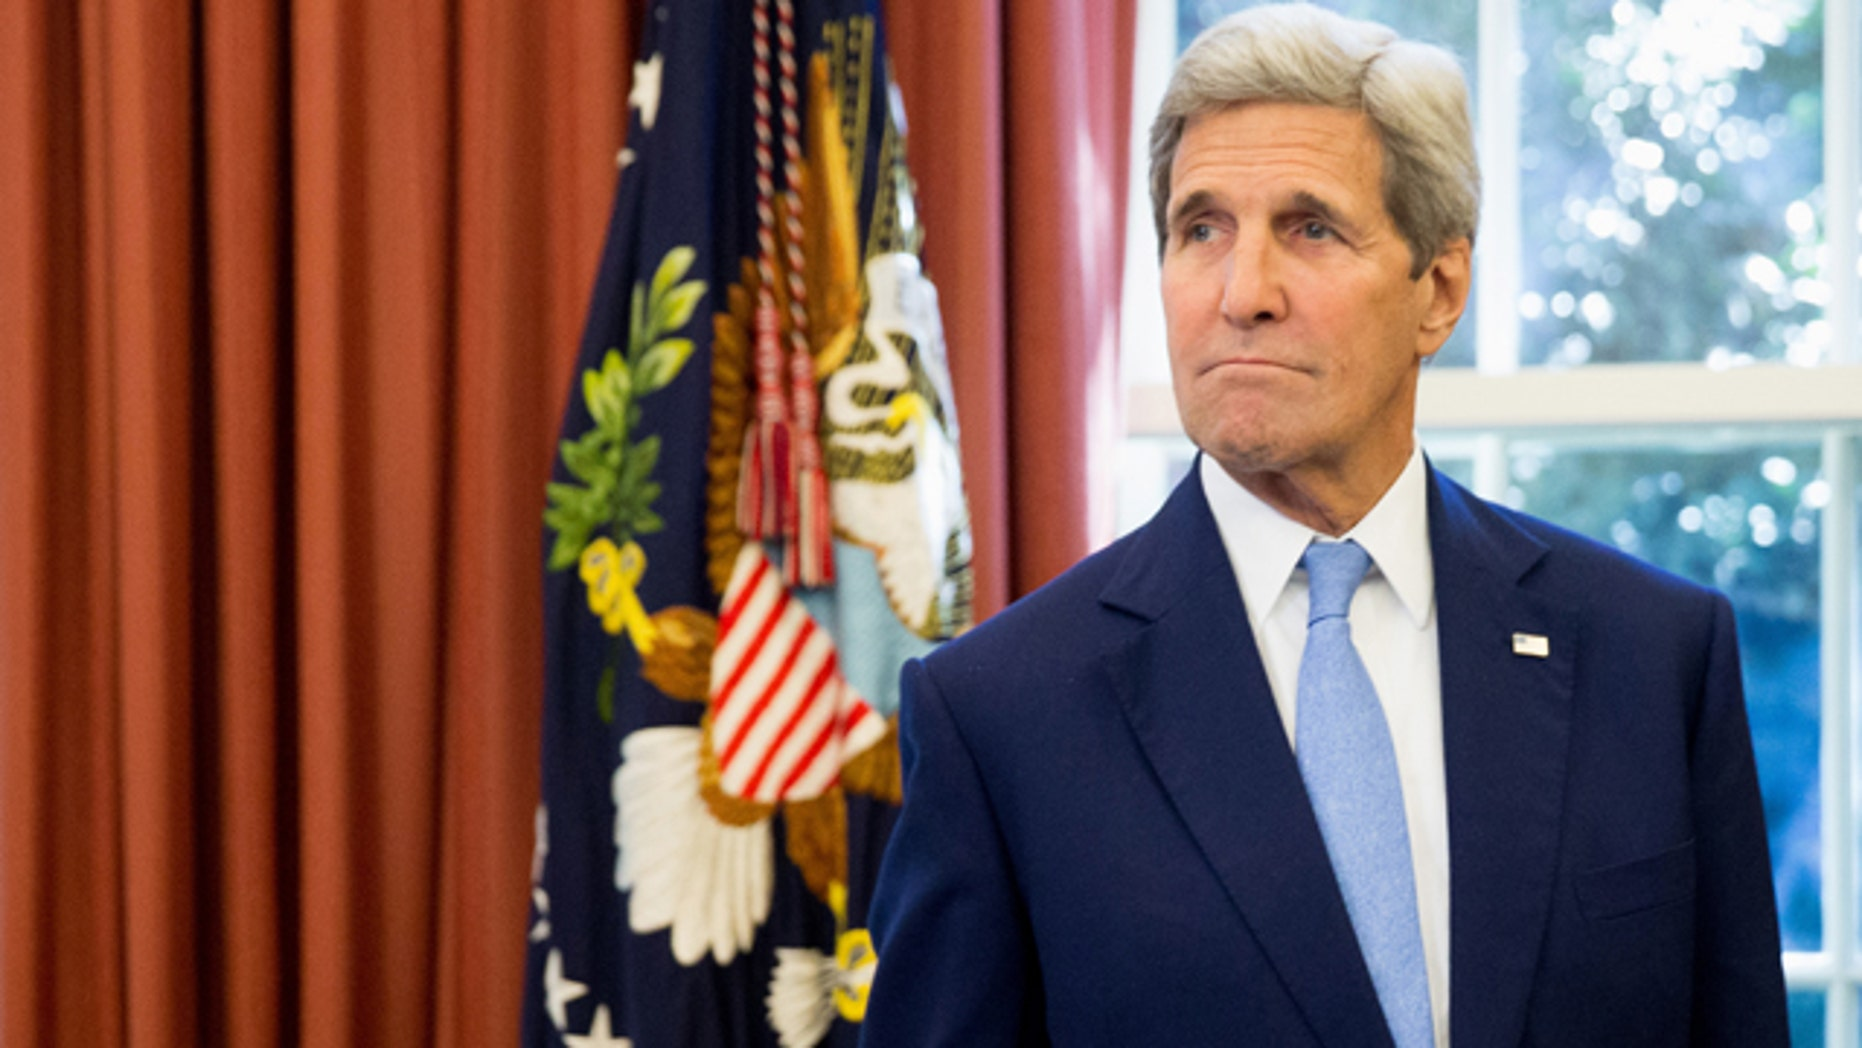 FILE - In this Sept. 15, 2015 file photo, Secretary of State John Kerry is seen in the Oval Office of the White House in Washington. (AP Photo/Andrew Harnik, File)